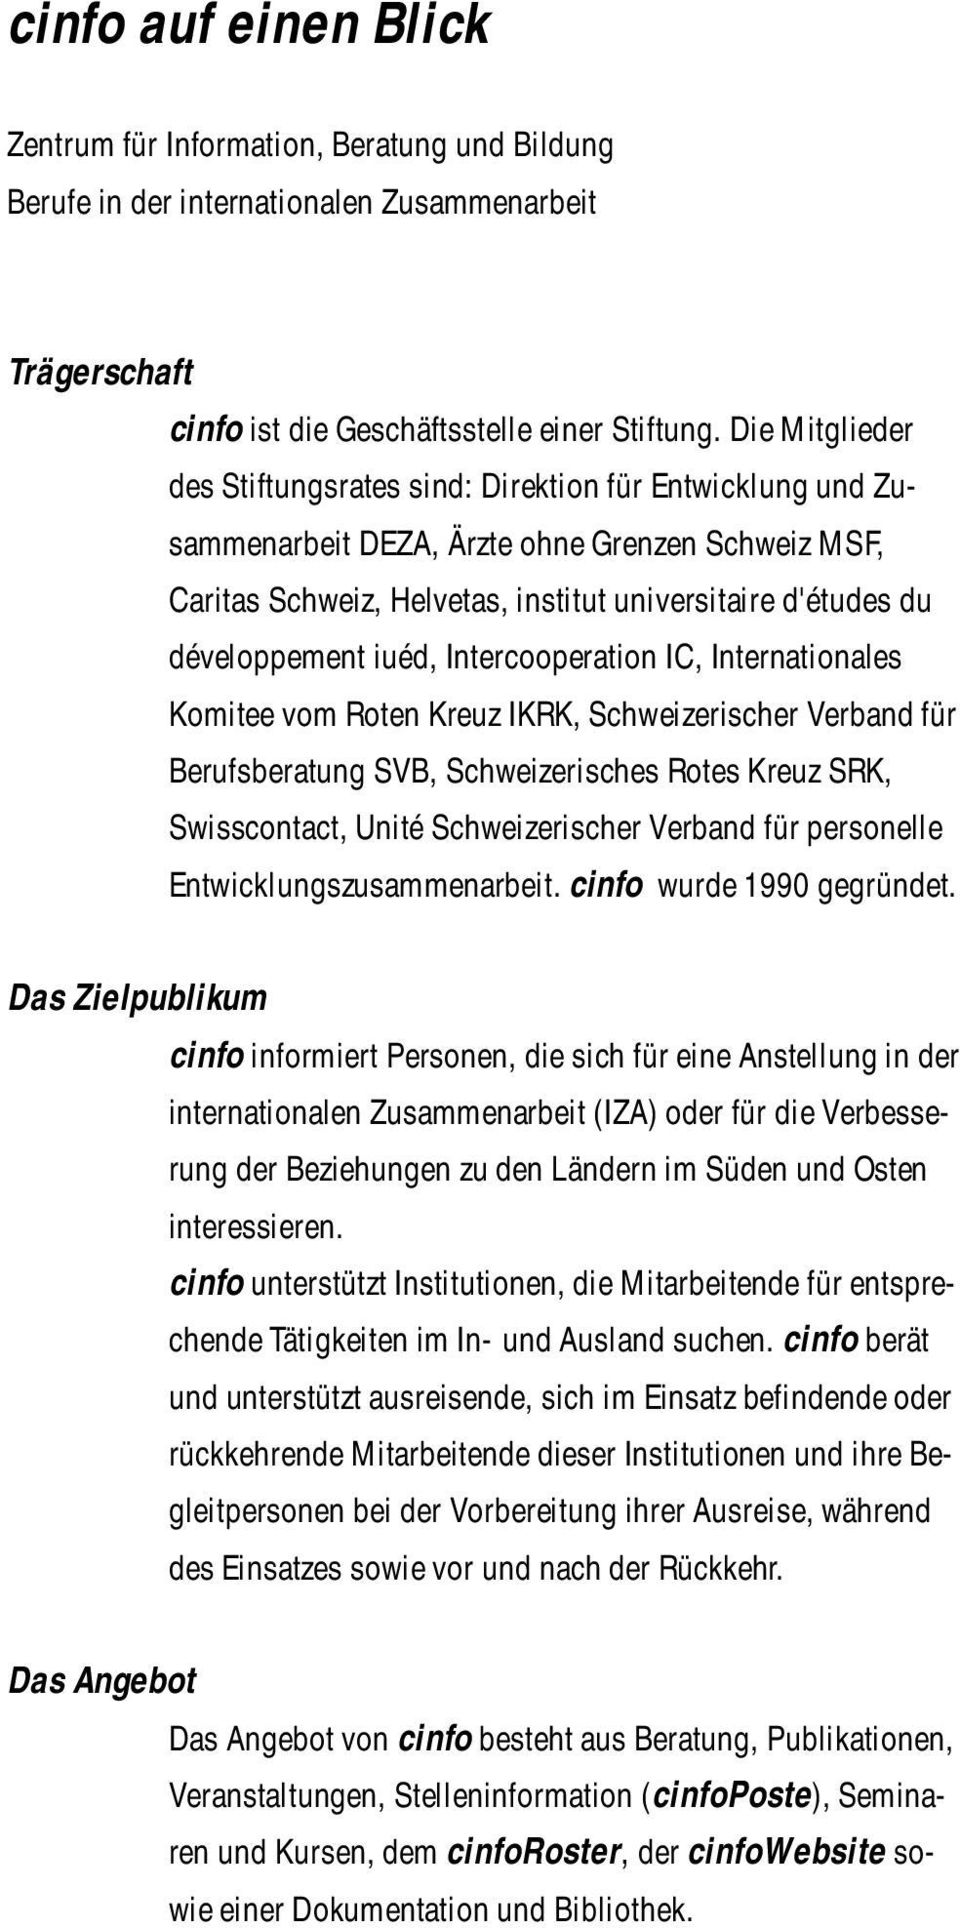 iuéd, Intercooperation IC, Internationales Komitee vom Roten Kreuz IKRK, Schweizerischer Verband für Berufsberatung SVB, Schweizerisches Rotes Kreuz SRK, Swisscontact, Unité Schweizerischer Verband